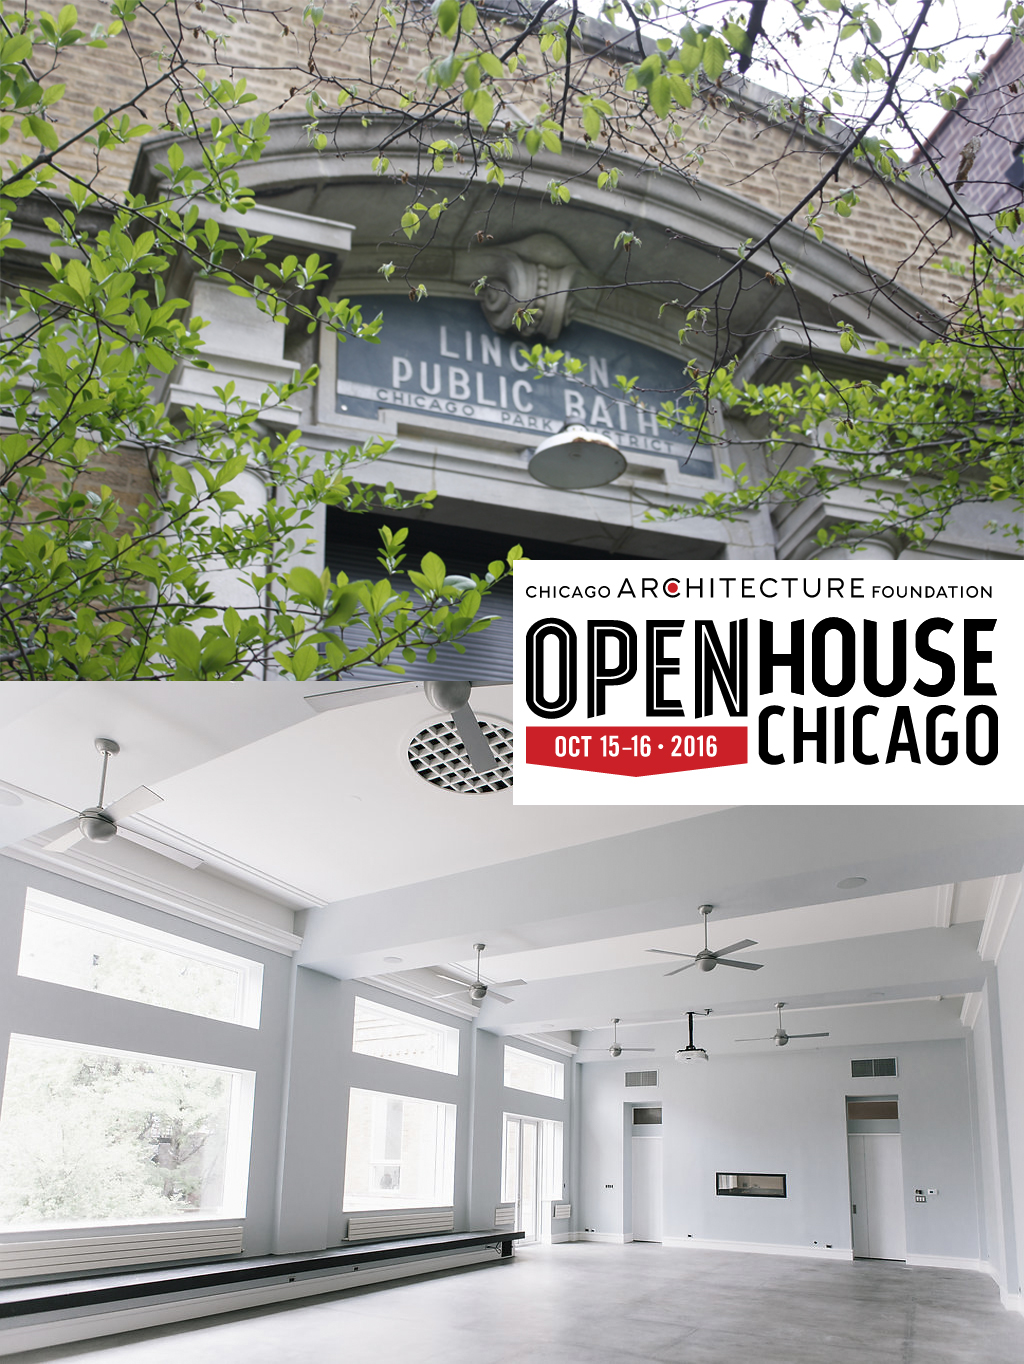 WOLCOTT BATHHOUSE  FEATURED IN  OPEN HOUSE CHICAGO   The Lincoln Street Bath House is arguably the most architecturally interesting bath houses in Chicago, inspired by the architecture of ancient Roman monuments.